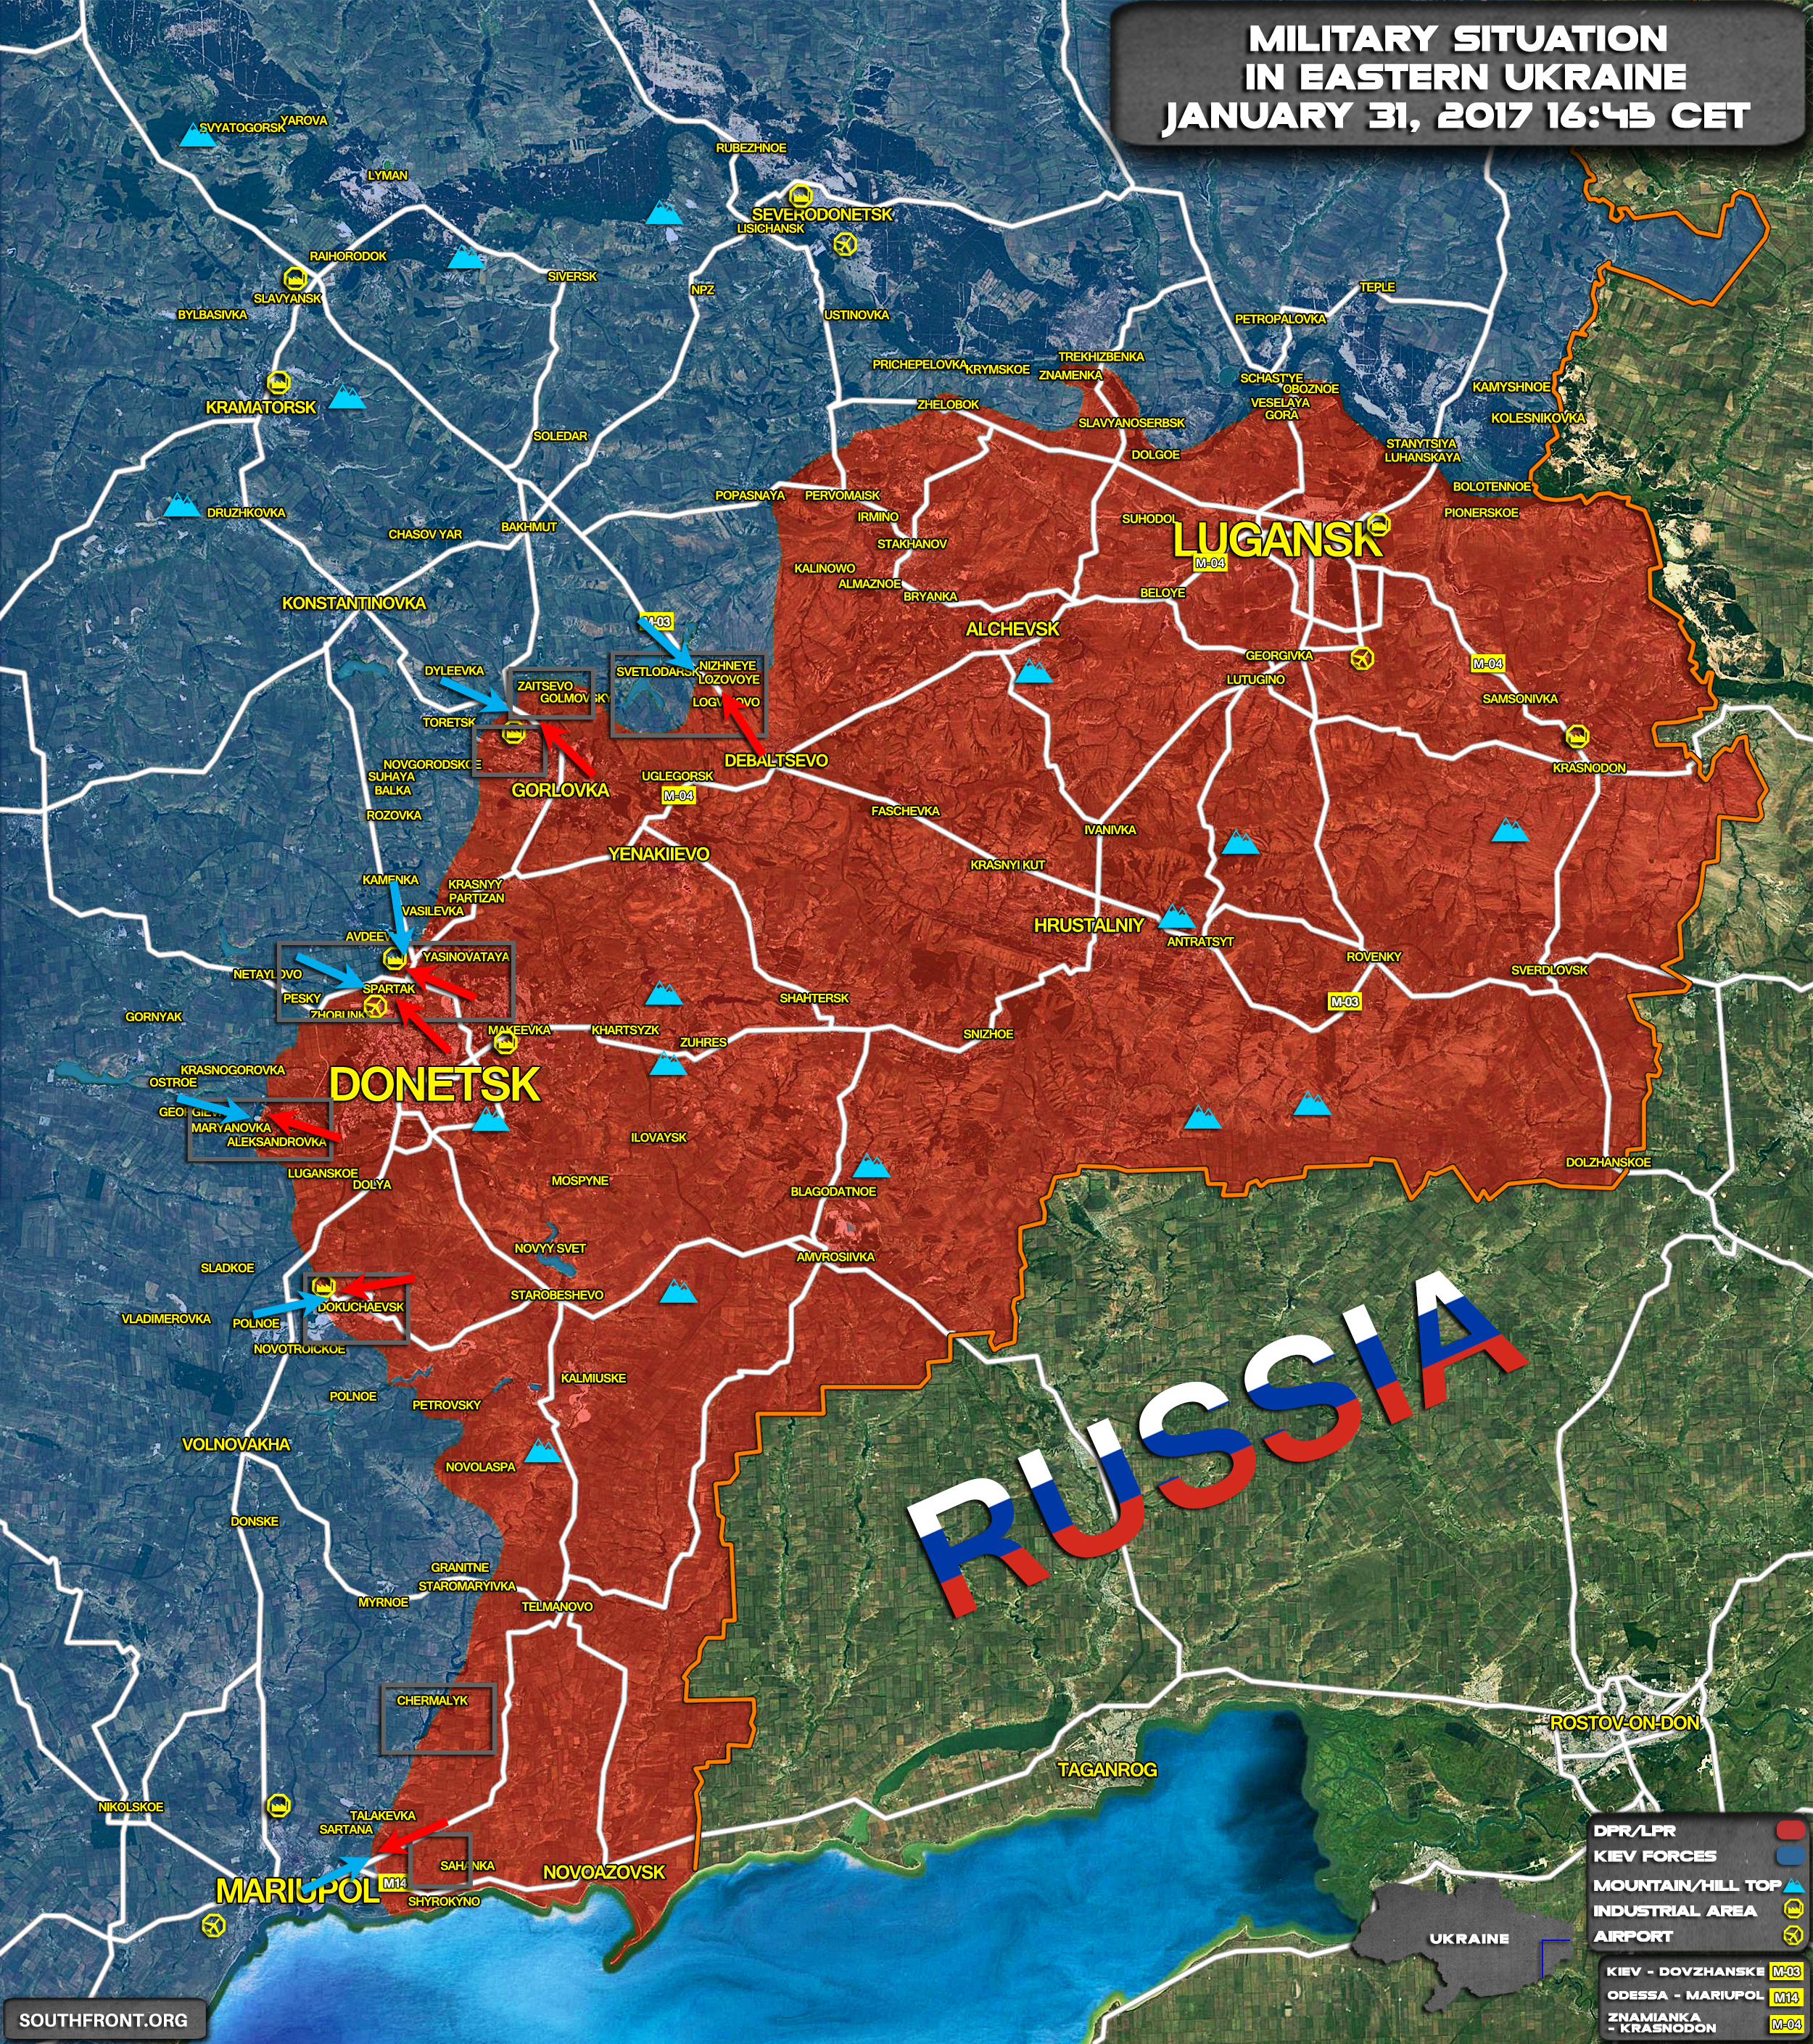 review of recent military escalation in eastern ukraine map